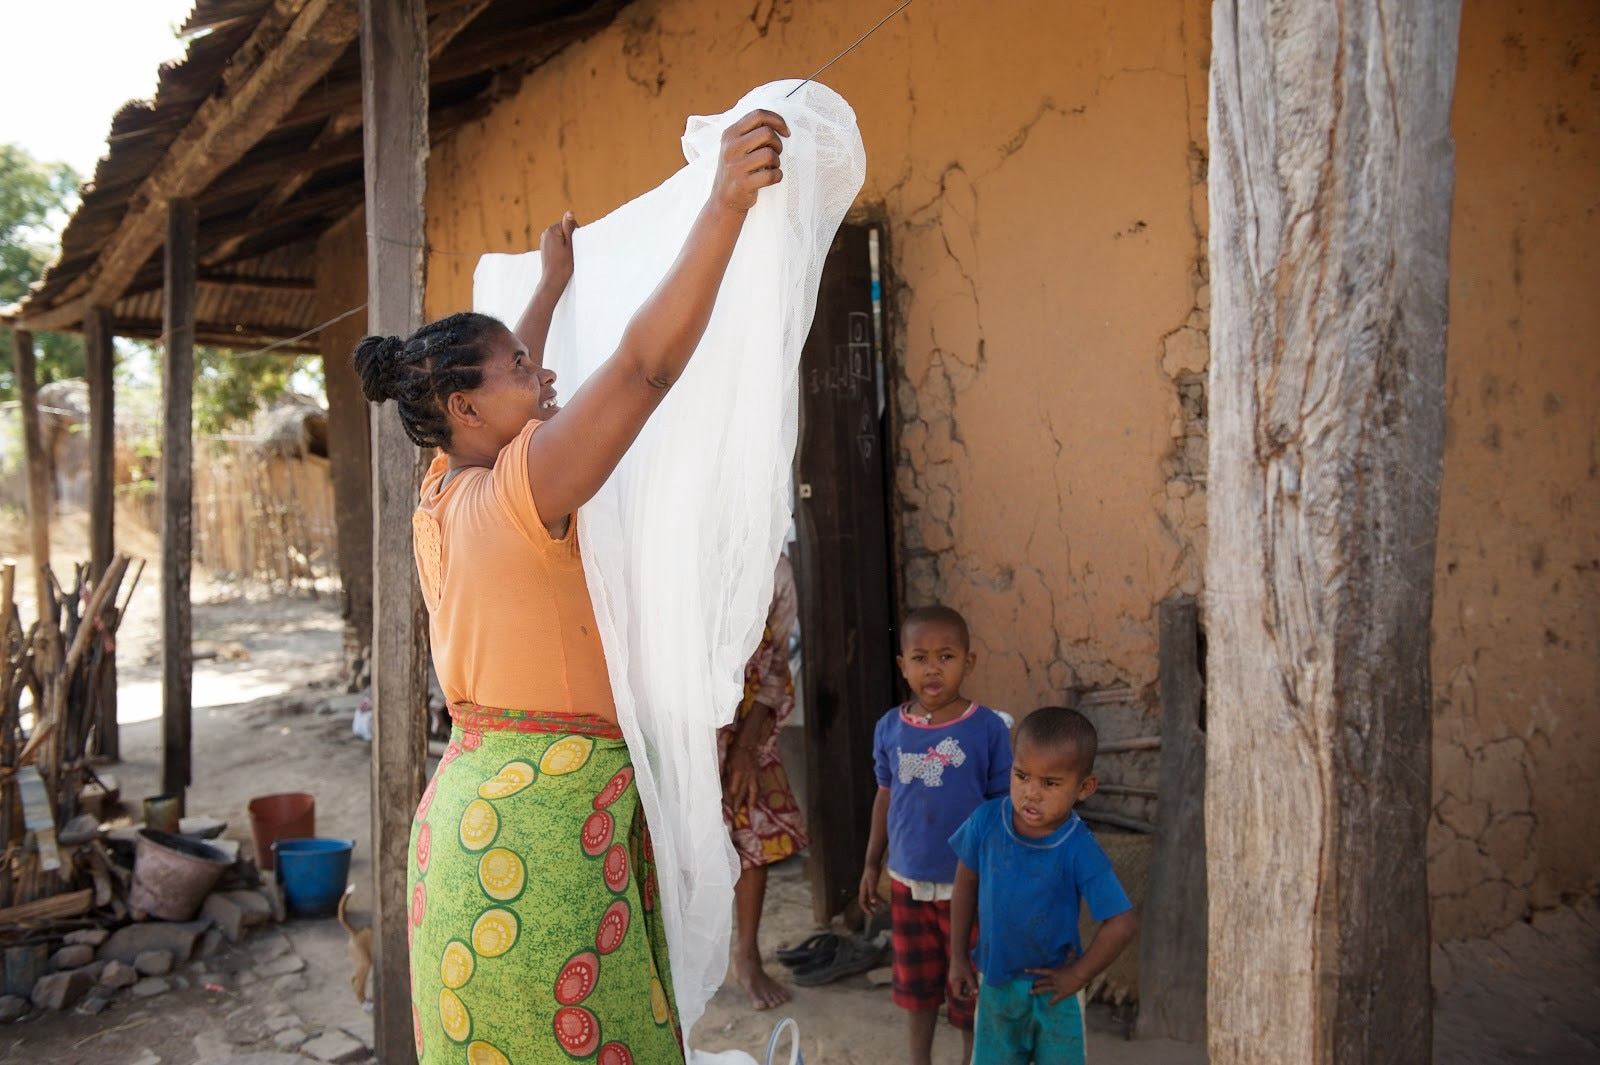 Florentine, a beneficiary from Boriziny, unfolds her newly delivered insecticide-treated bed net. (Lan Andrian, USAID Global Health Supply Chain Program—Procurement and Supply Management)